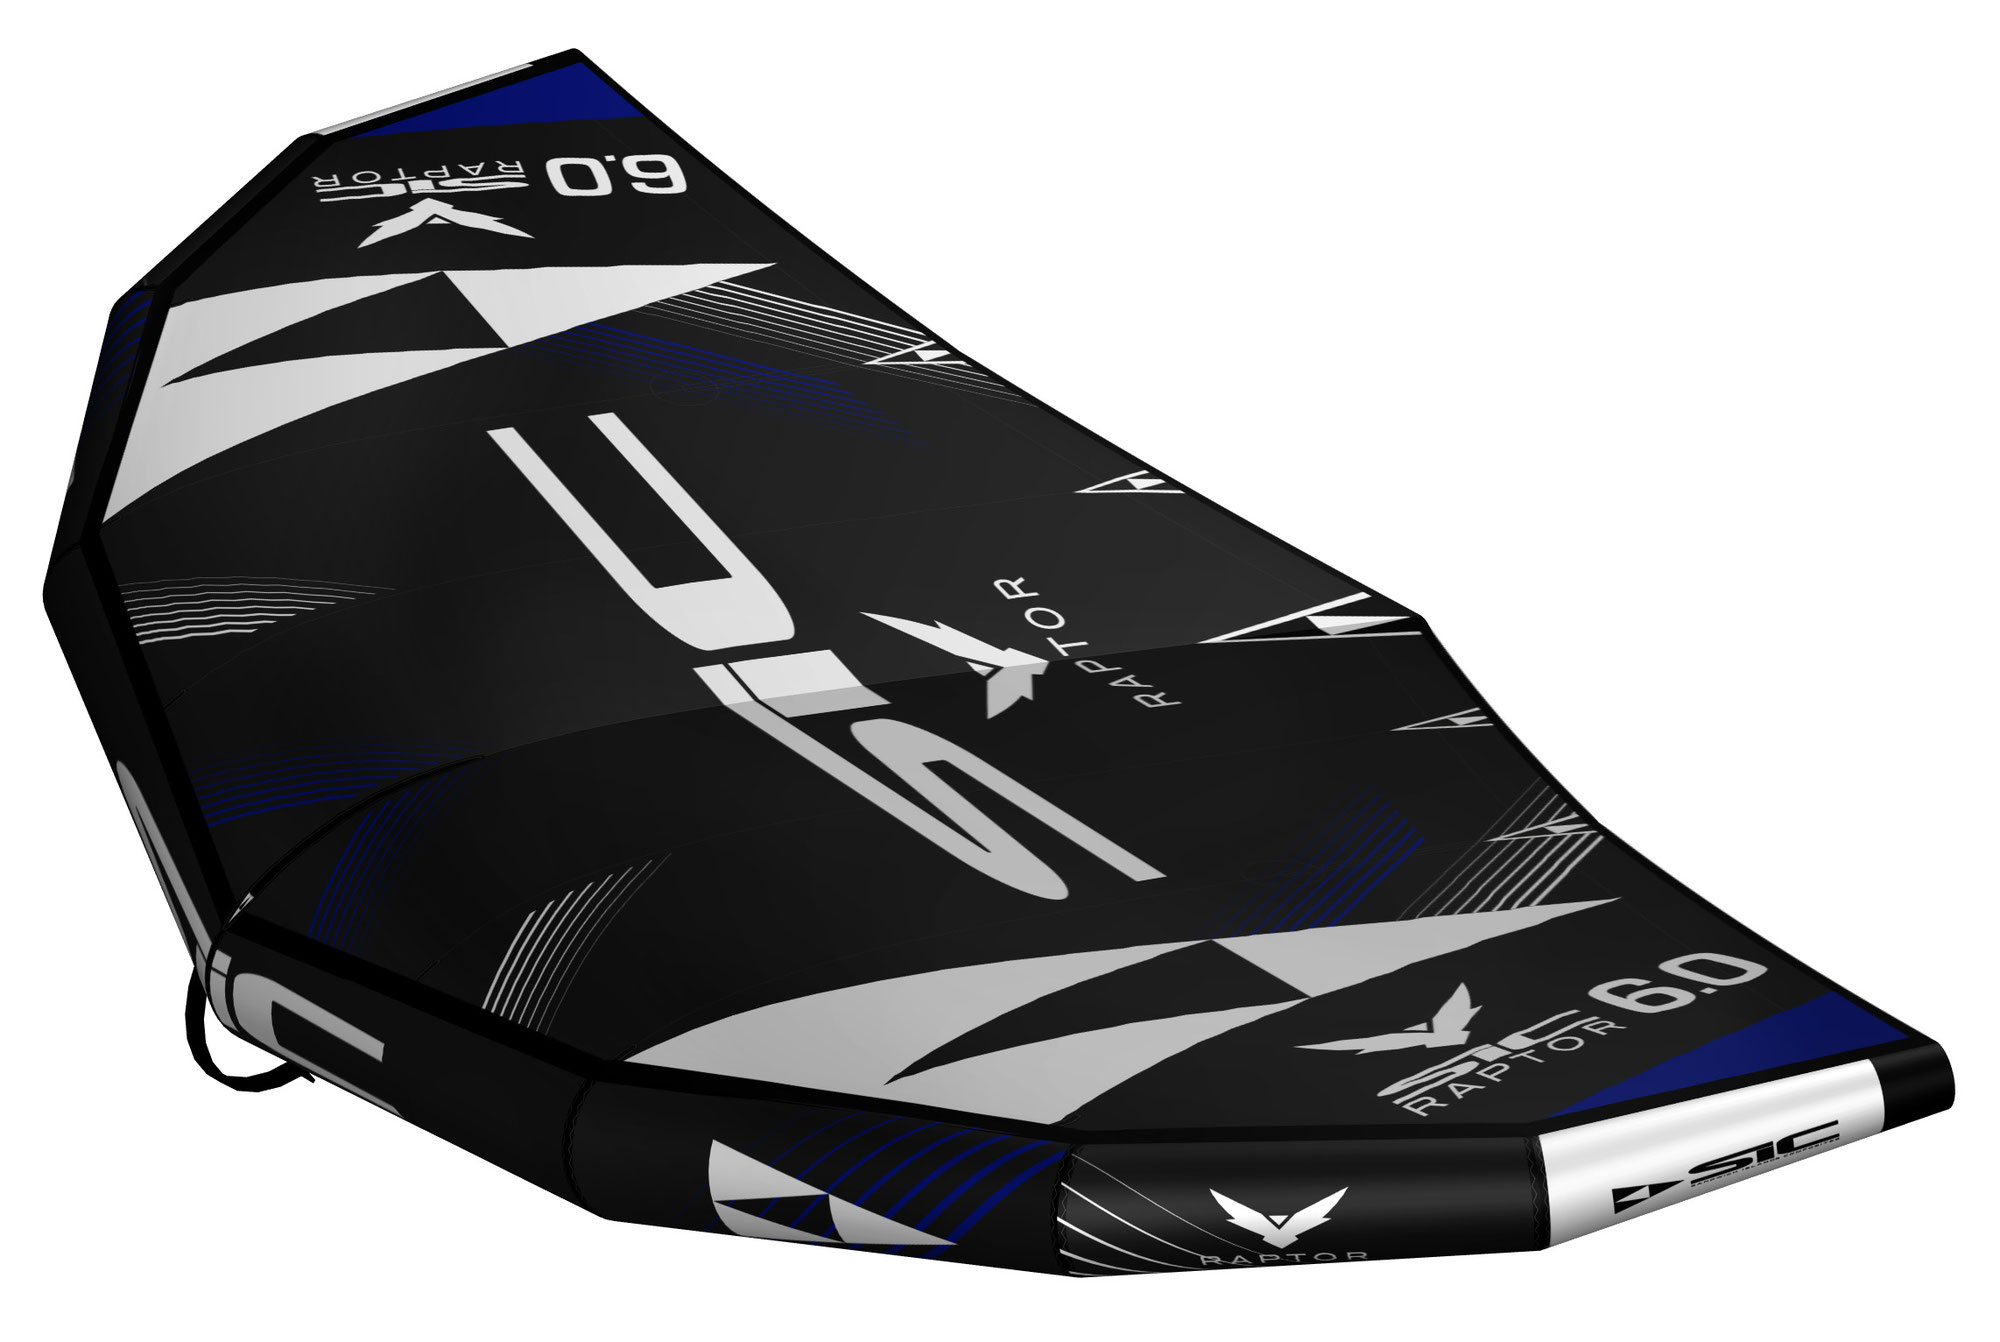 SIC Raptor Wing powered by Core Kiteboarding